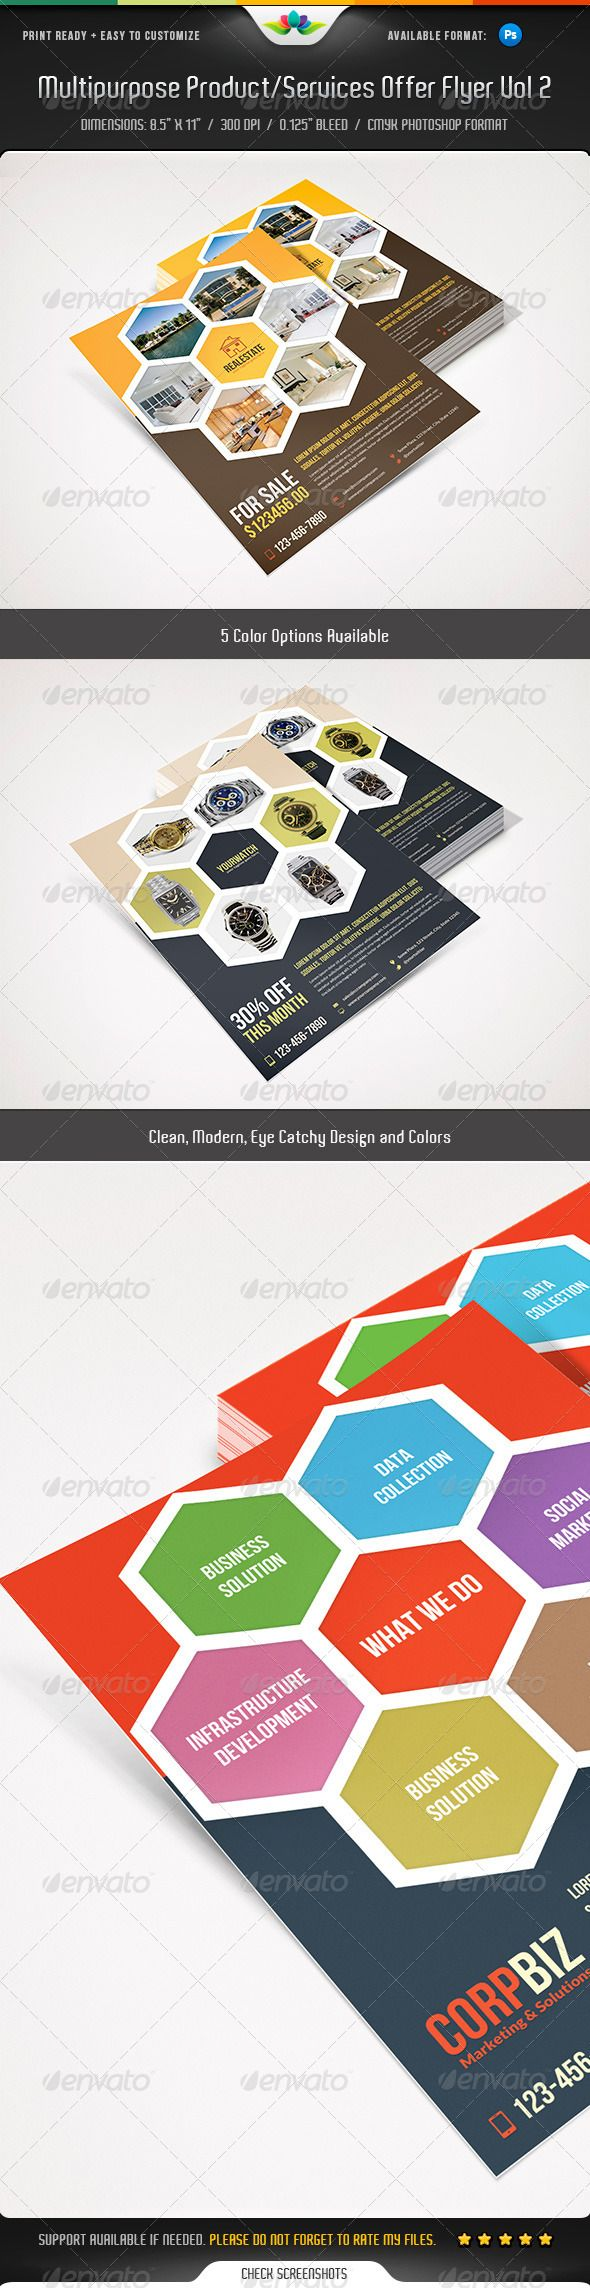 17 best images about marketing flyer multipurpose product services offer flyer vol 2